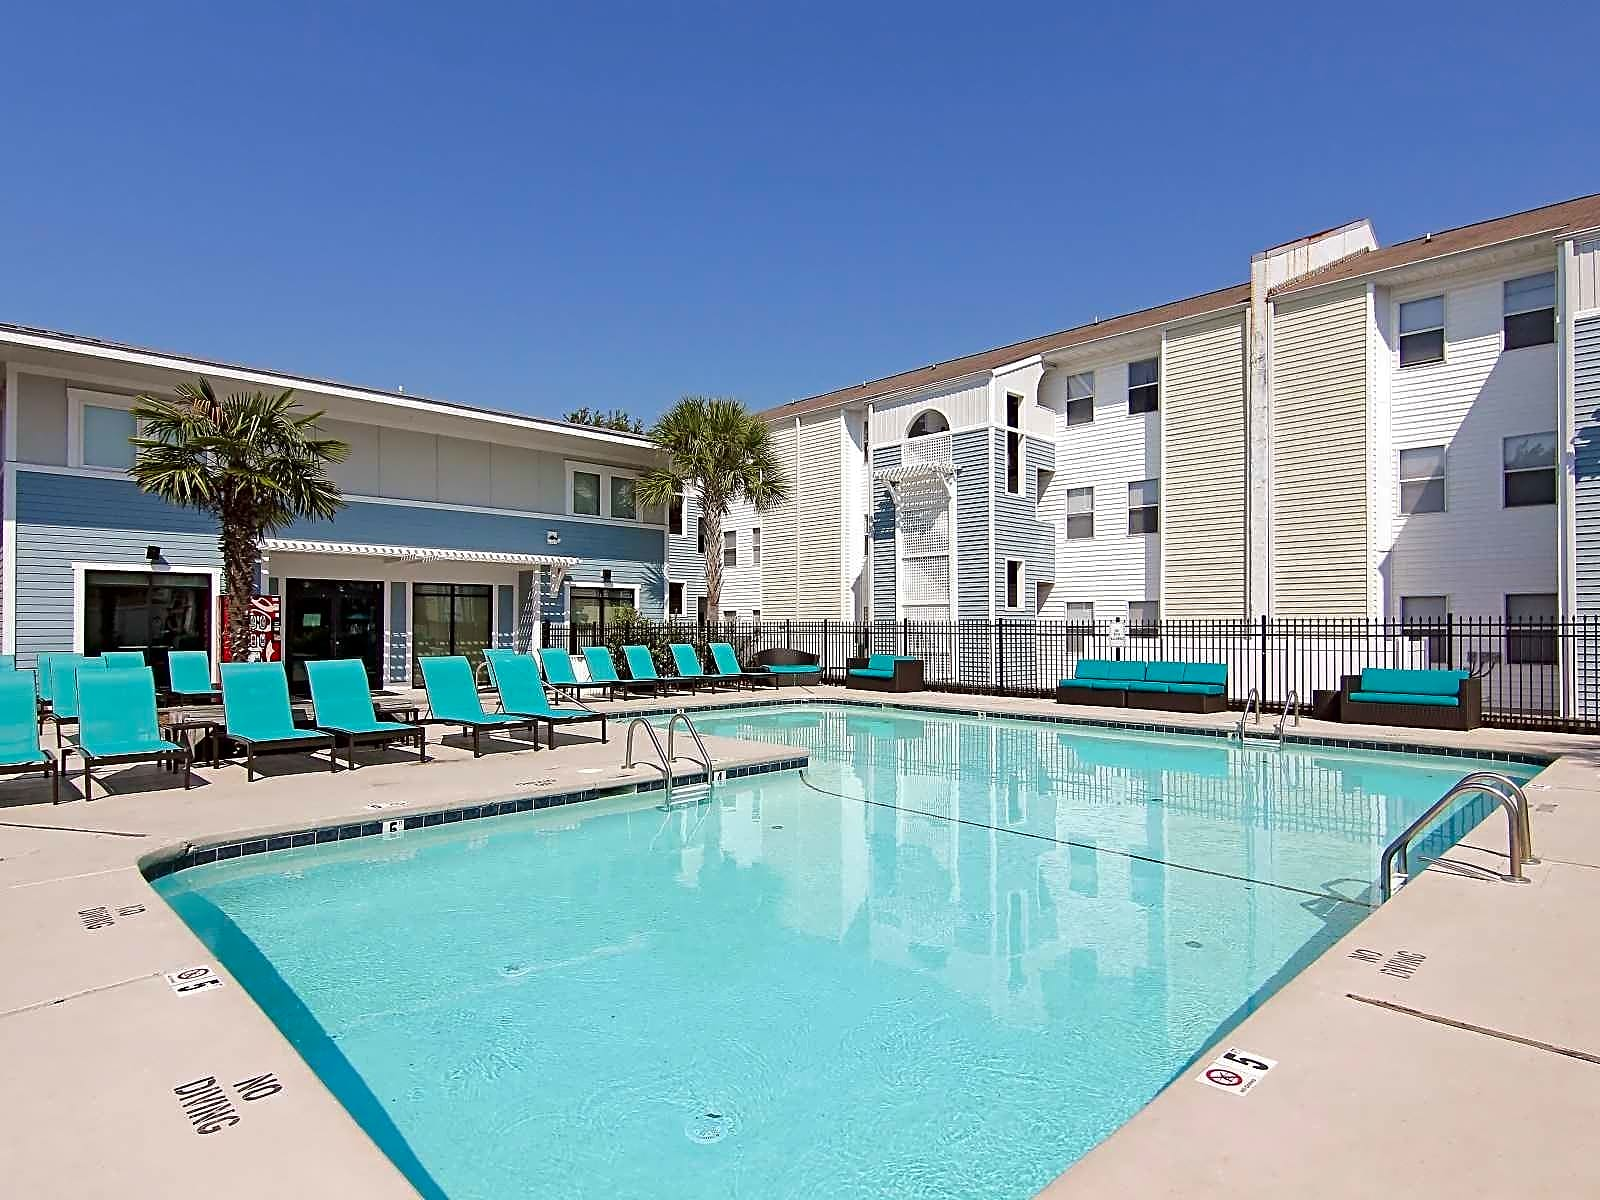 Apartments Near UNCW CEV Wilmington - PER BED LEASE for University of North Carolina-Wilmington Students in Wilmington, NC